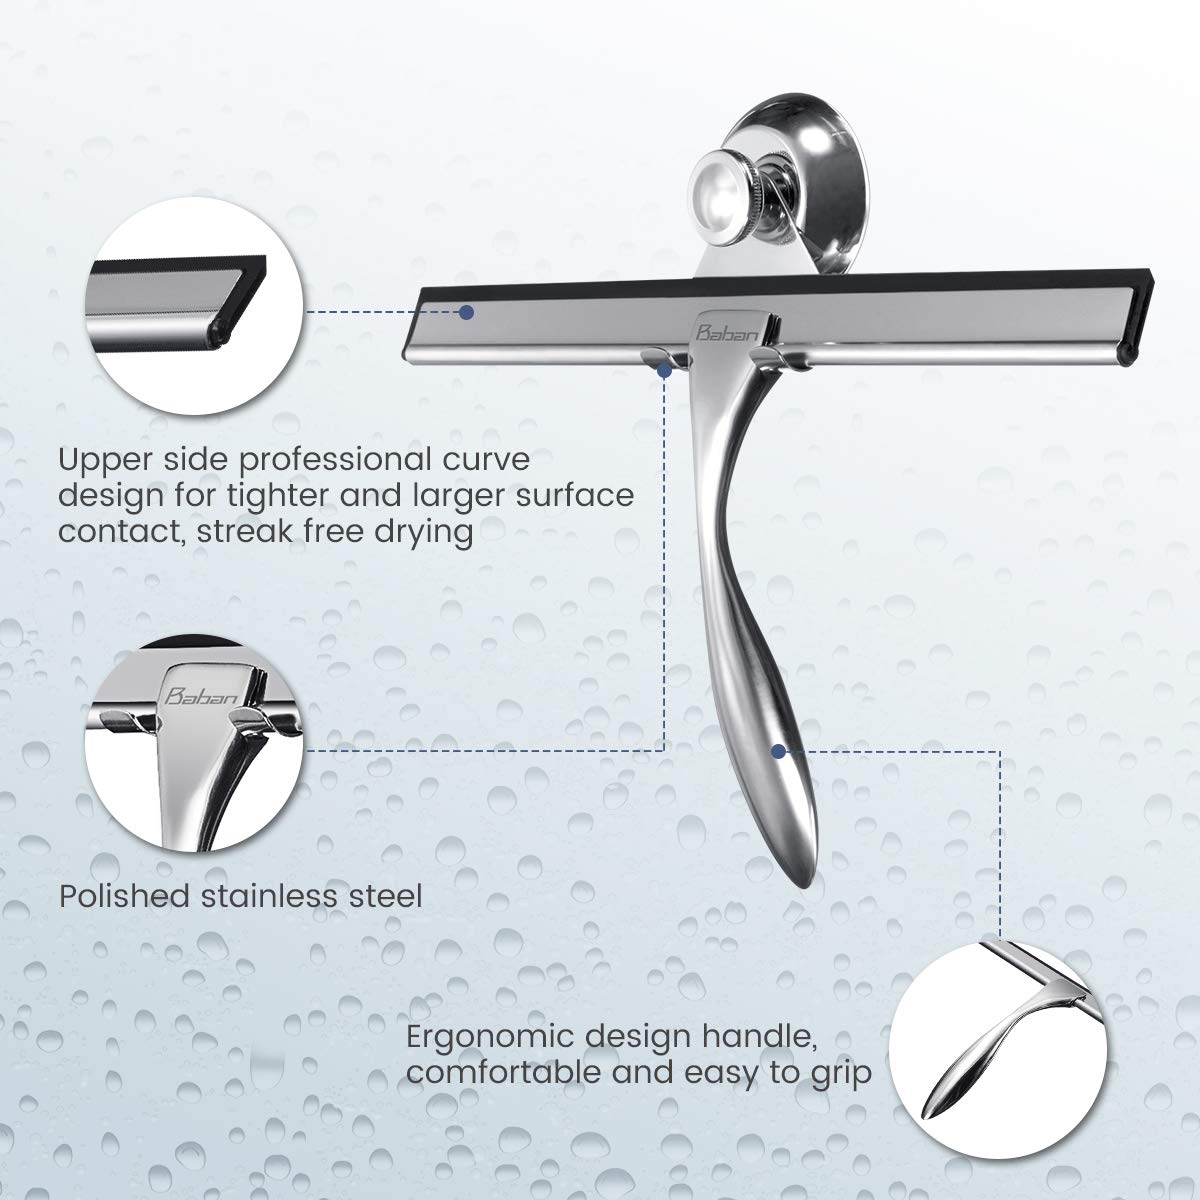 Baban Shower Squeegee Glass Squeegee Window Squeegee All-Purpose Squeegee for Bathroom//Kitchen//Car Glass//Mirror//Shower Door Stainless Steel Squeegee with Suction Cup Hooks Holder 9.6 Inch hbvfghfv